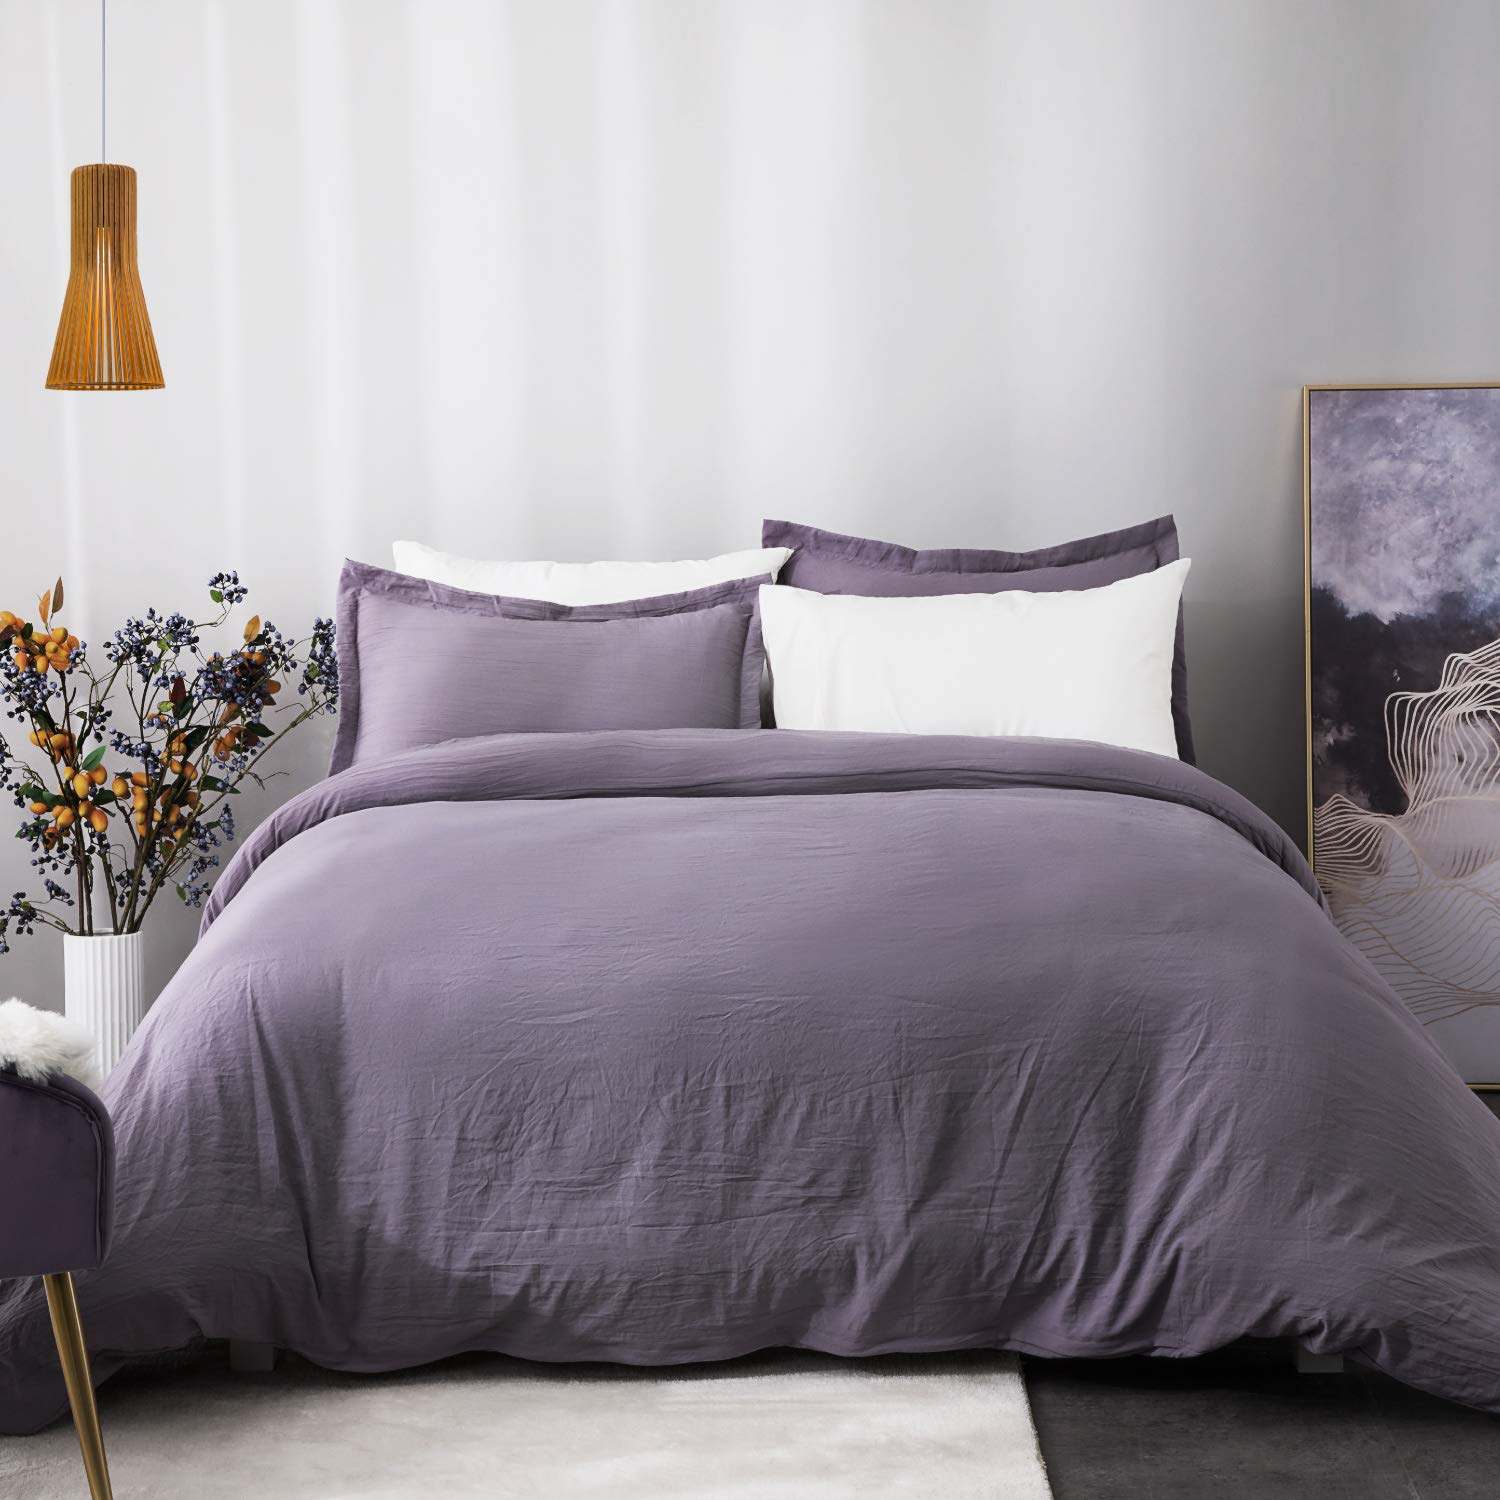 Bedsure Grayish Purple Duvet Cover Set with Zipper Closure, Washed Process Microfiber - Ultra Soft Full/Queen Size(90x90 inches)-3 Pieces (1 Duvet Cover + 2 Pillow Shams) Hypoallergenic